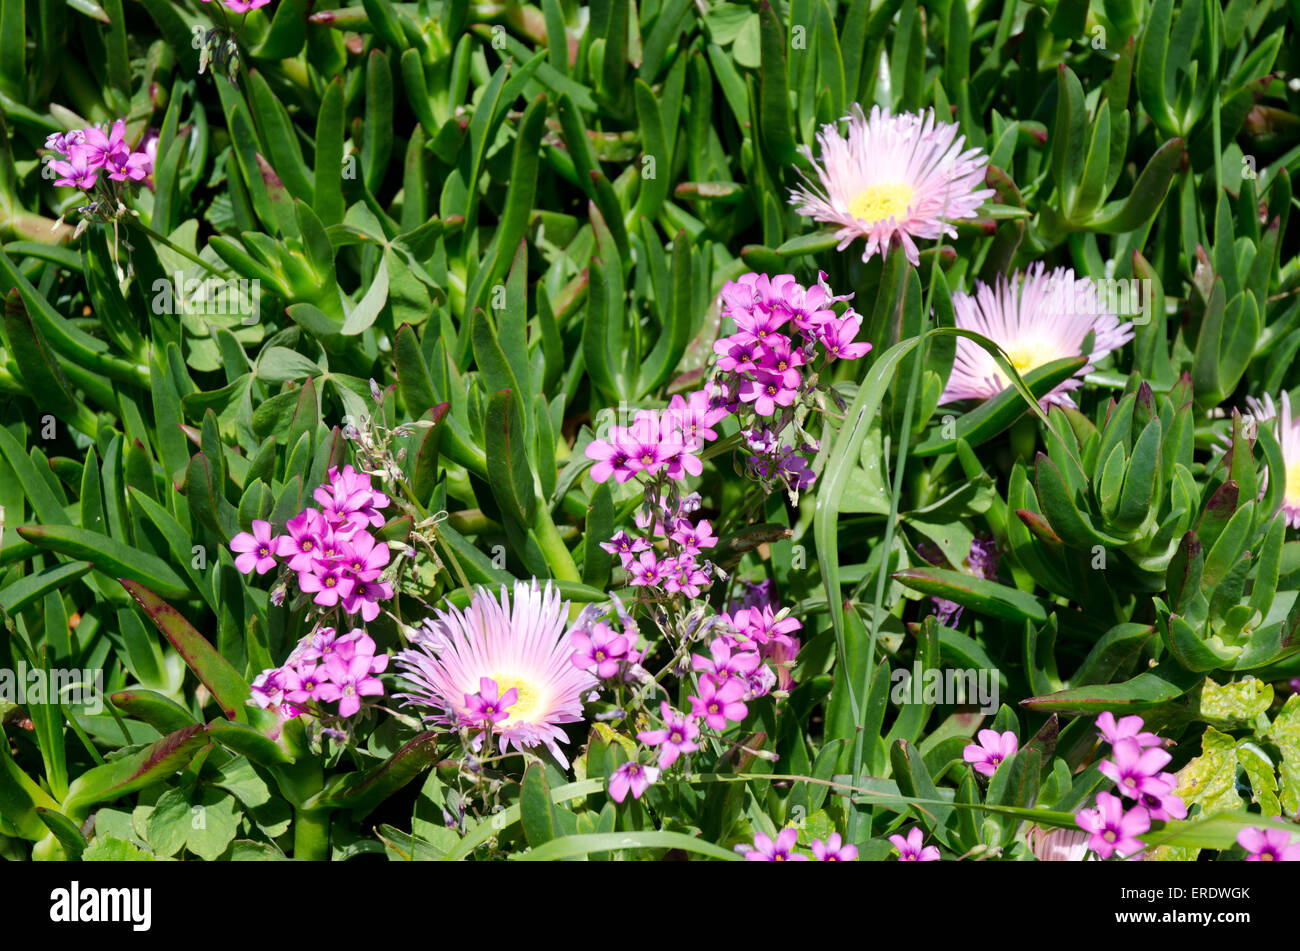 Pink daisy like flowers with yellow centres and succulent leaves pink daisy like flowers with yellow centres and succulent leaves often found in sunny climates izmirmasajfo